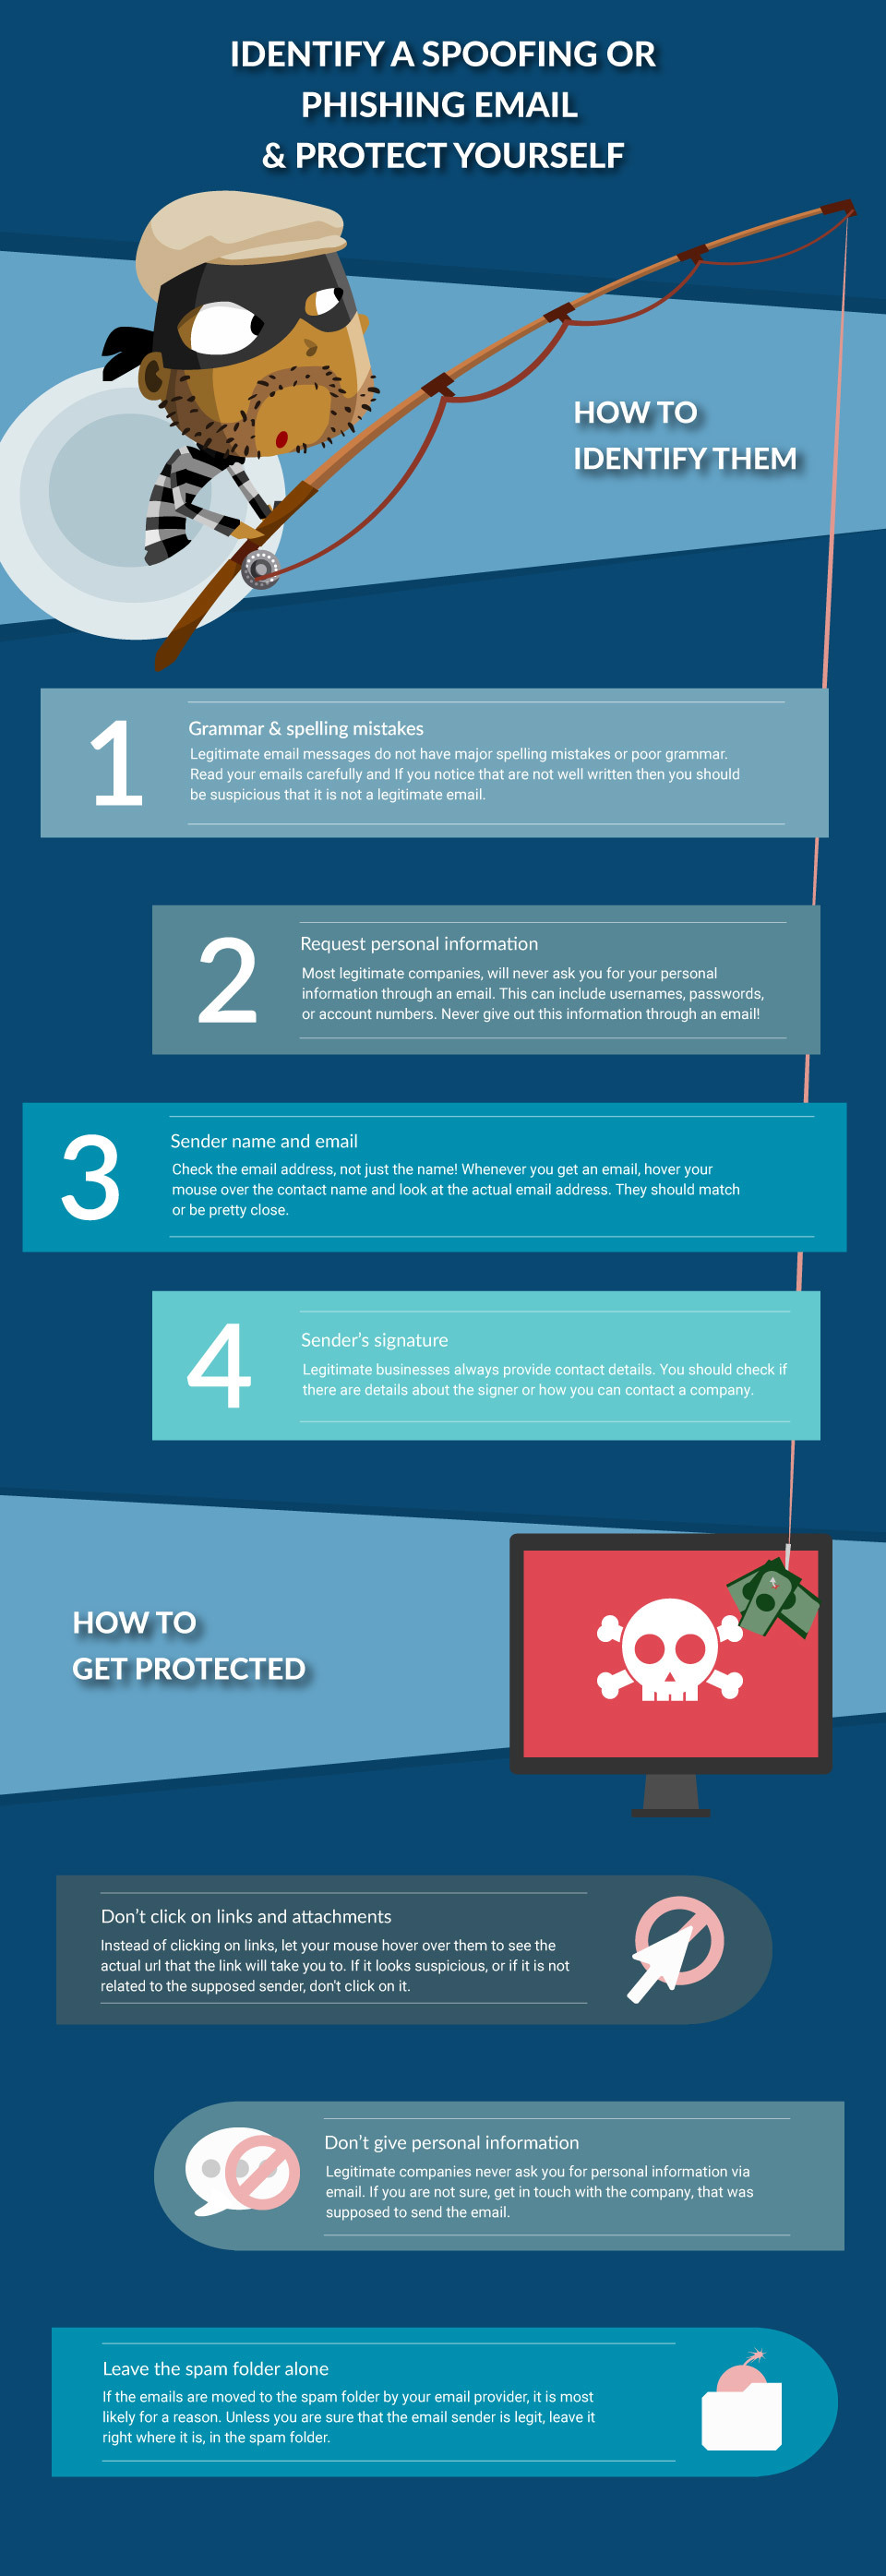 Identify spoofing or phishing email and get protected (infographic)